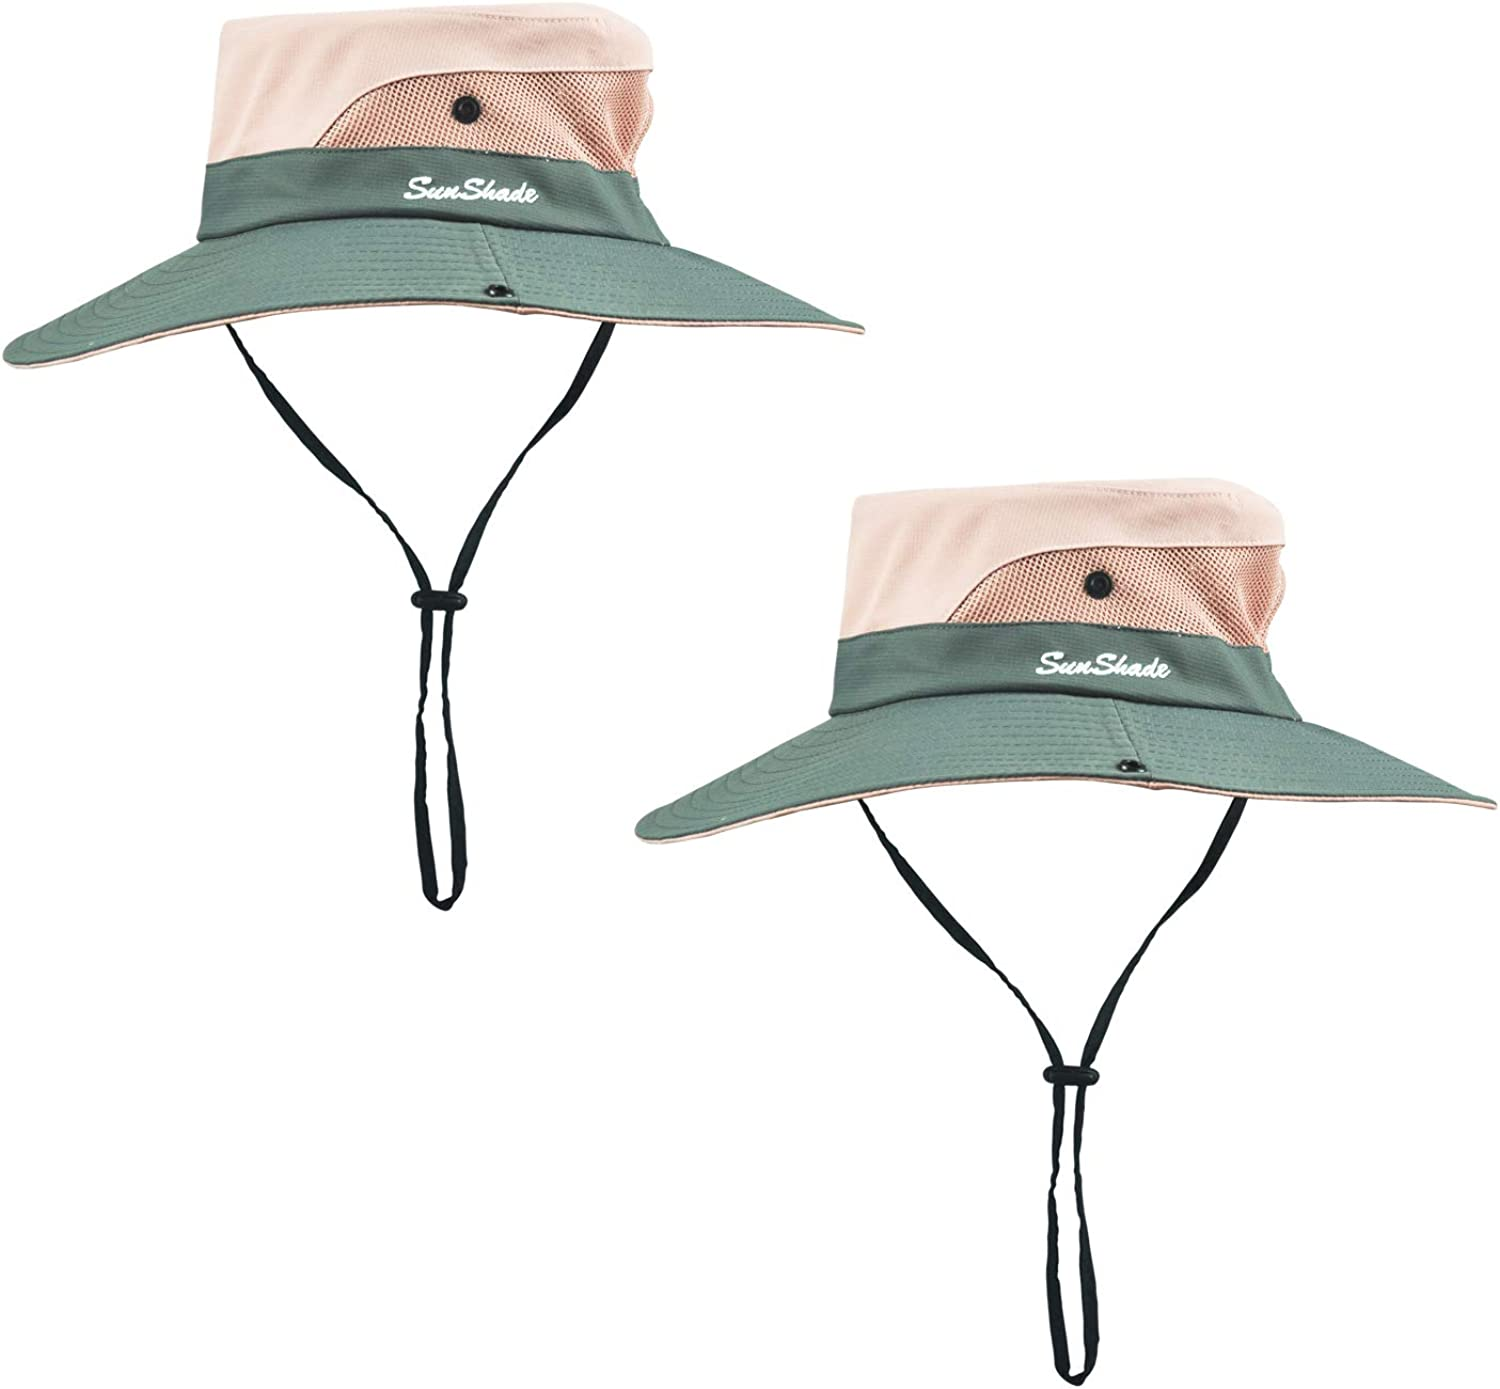 ELUTONG 2 Women Sun Boonie Outdoor Hats Wide Brimmed Mesh Beach Fishing Sun Hat